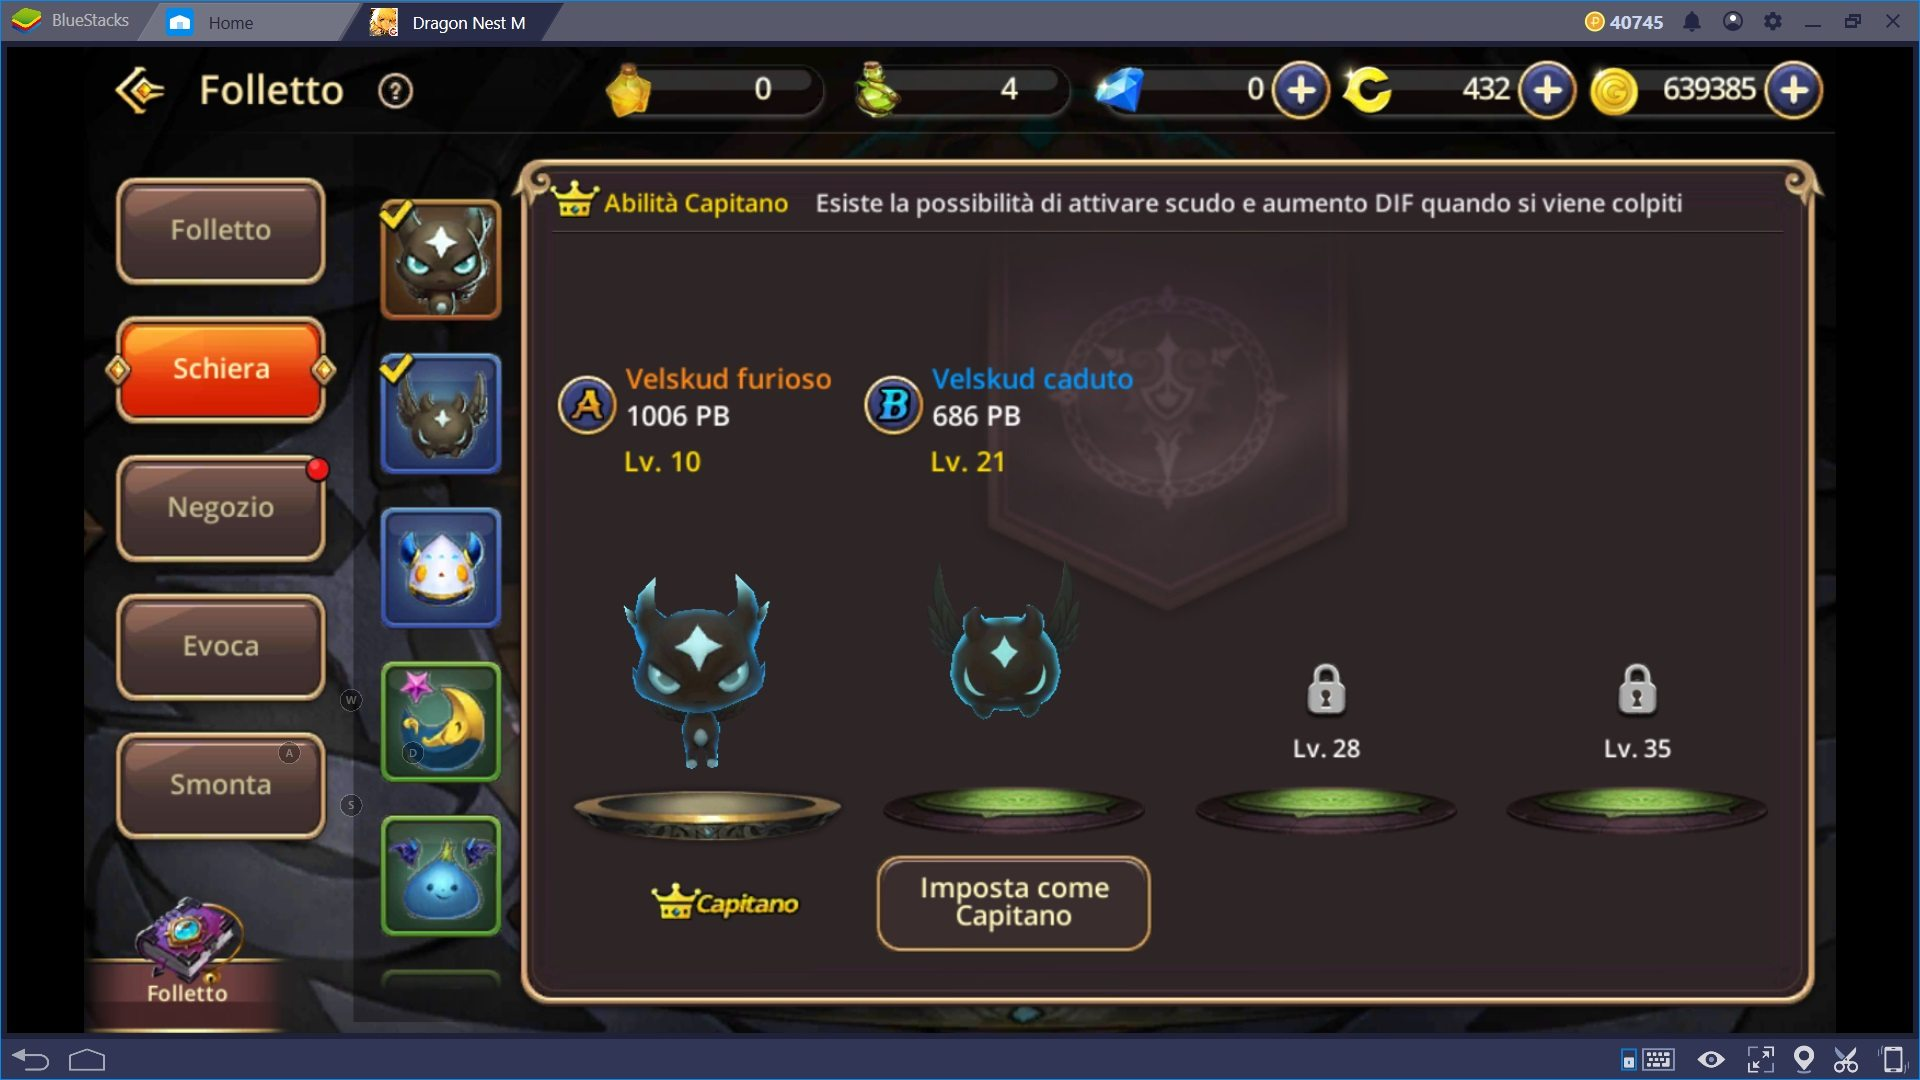 Come Utilizzare i Folletti in Dragon Nest M